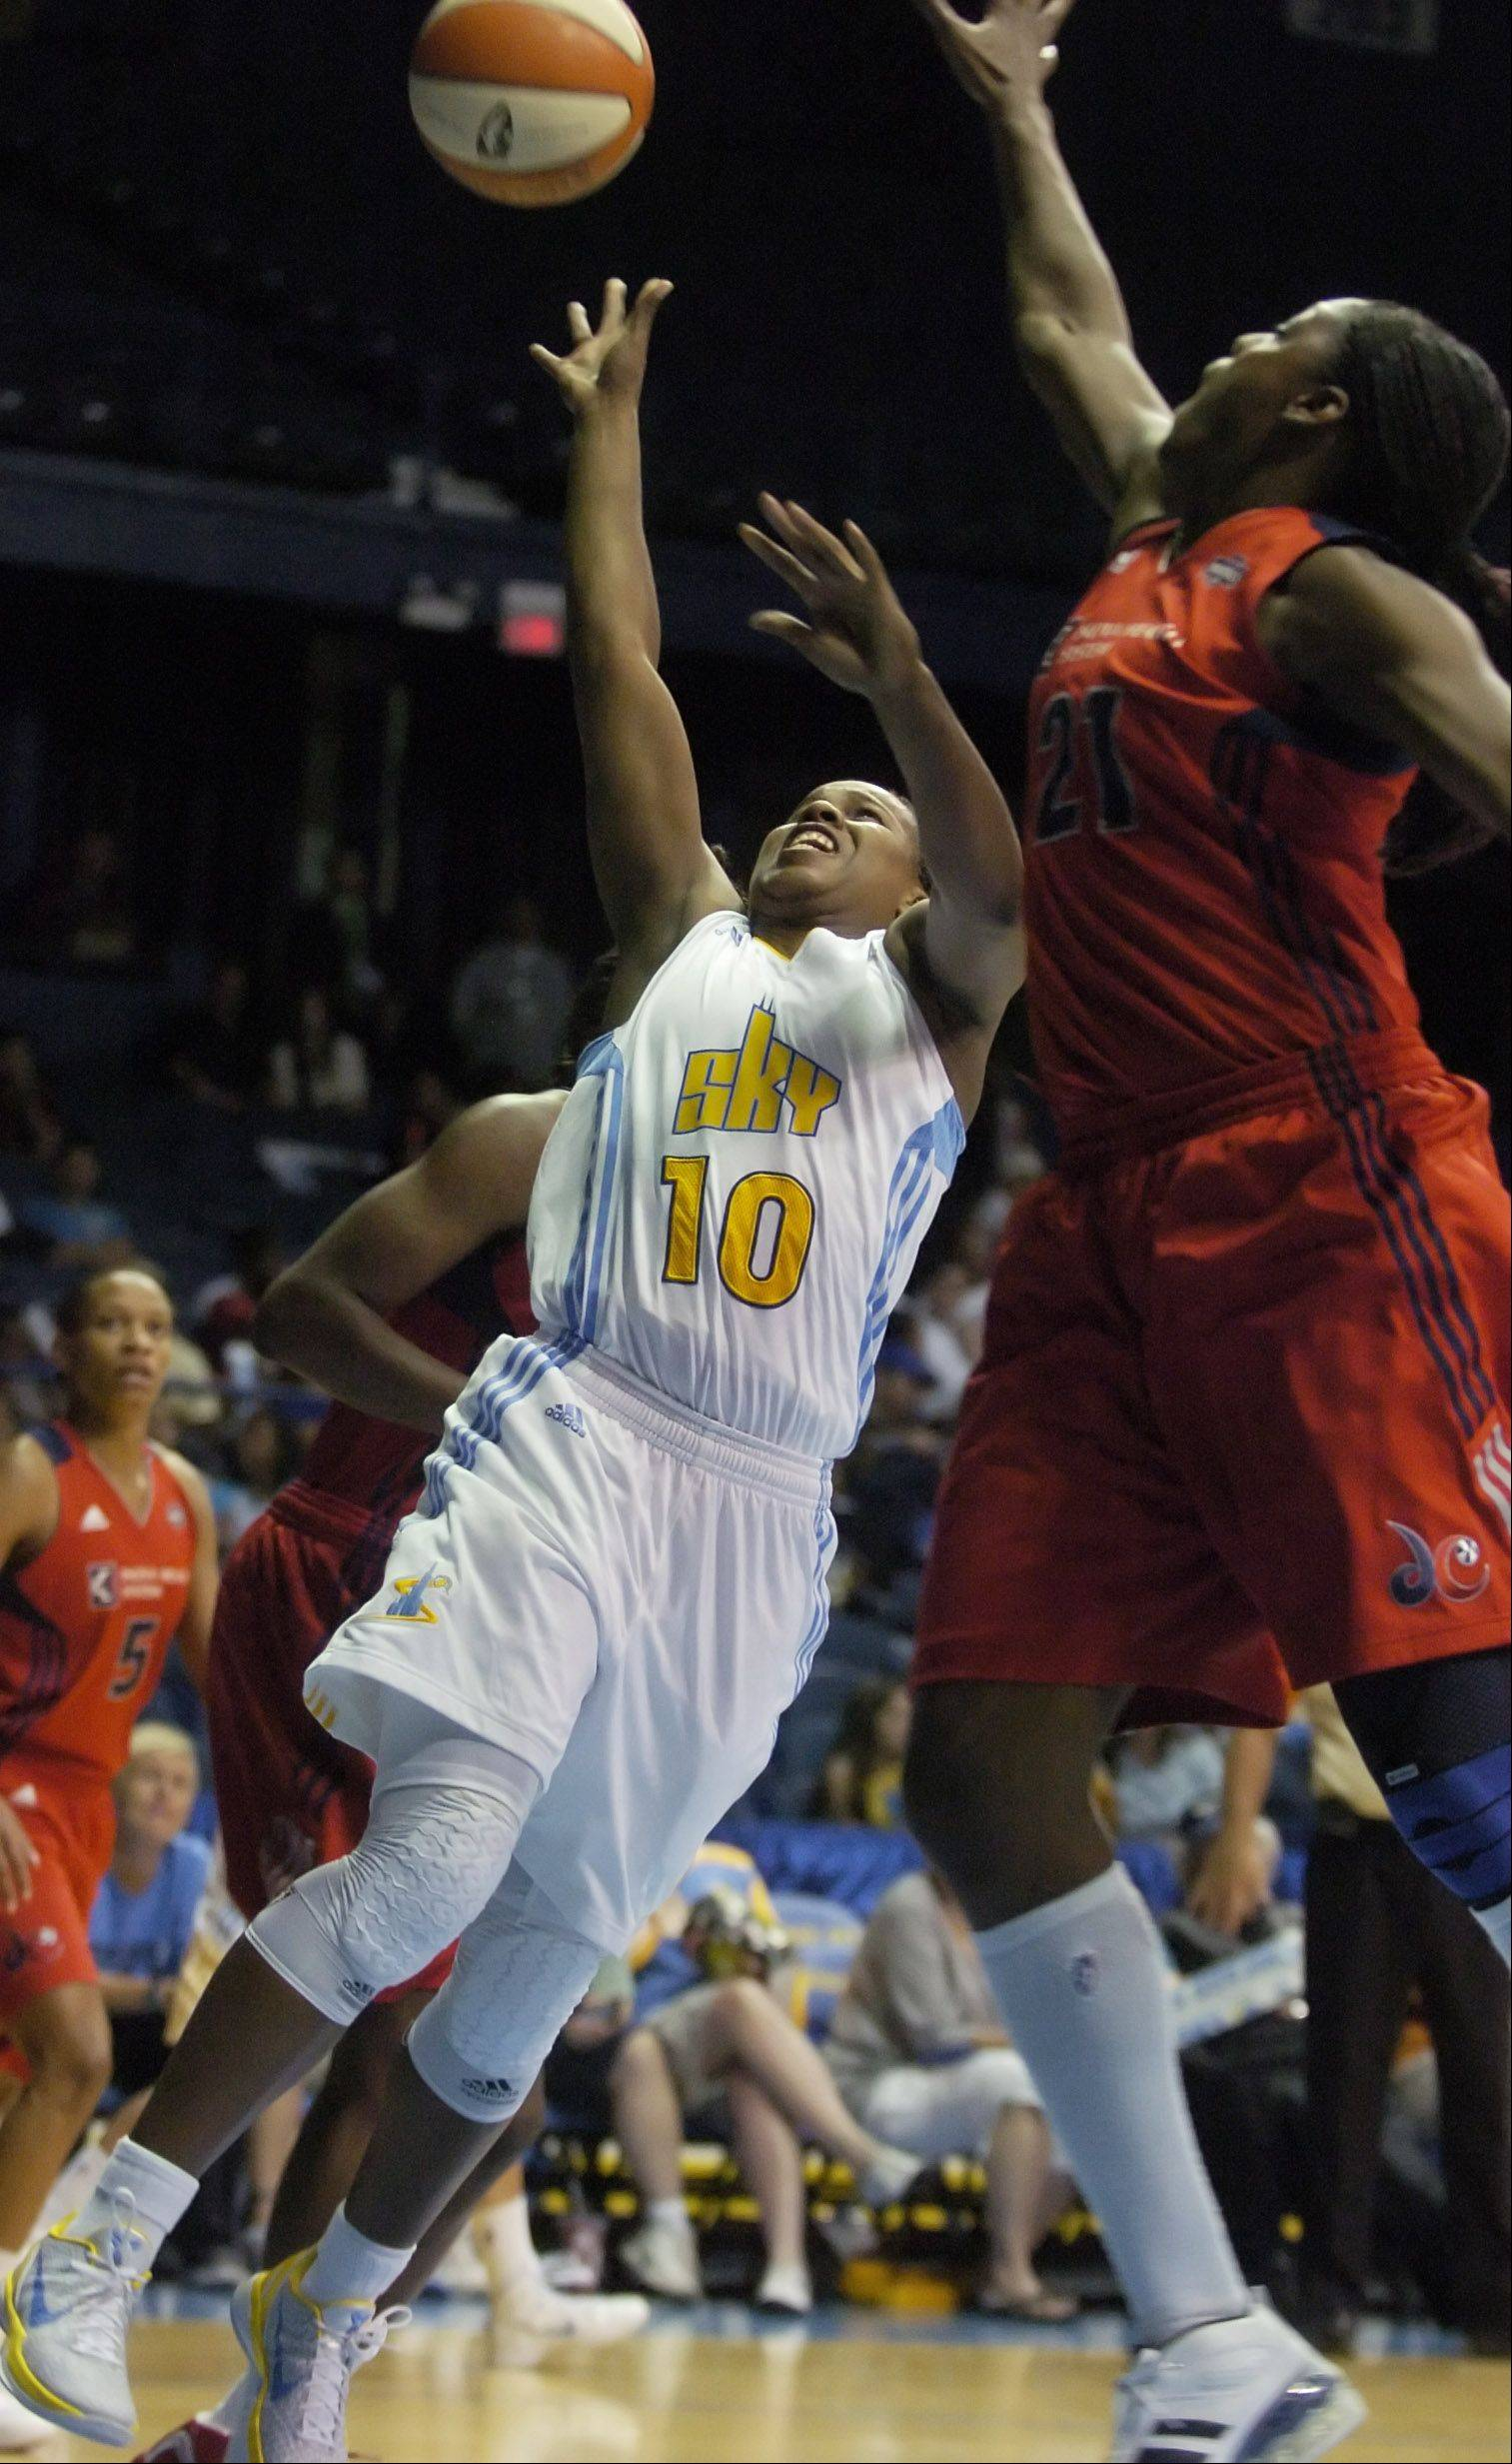 Epiphanny Prince of the Chicago Sky takes an off-balance shot as Nicky Anosike of the Washington Mystics defends during Tuesday's game at the Allstate Arena in Rosemont.